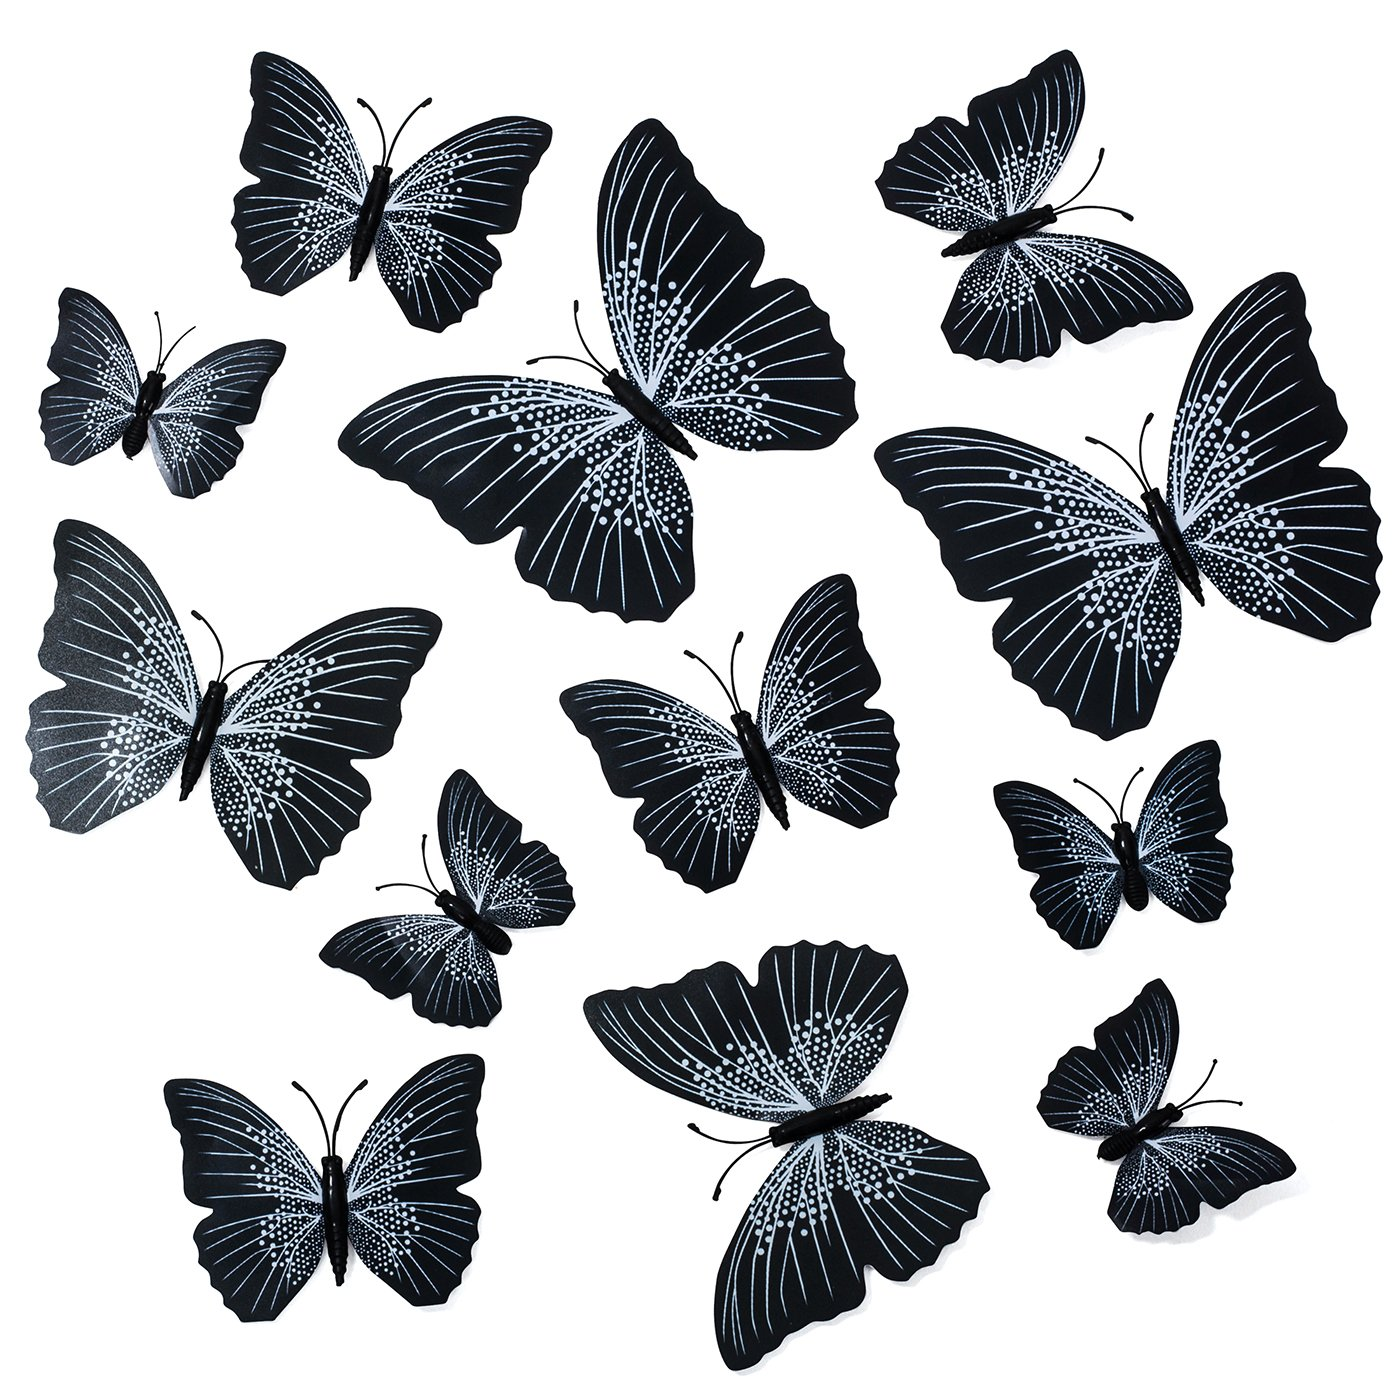 Butterfly Wall Decals - Butterfly Wall Stickers - 3D Butterfly Wall Stickers - Butterfly Wall Art - Wall Decals for Bedroom - Teen Room Decor - Black Butterfly Wall Stickers (12 pcs) by Dooboe